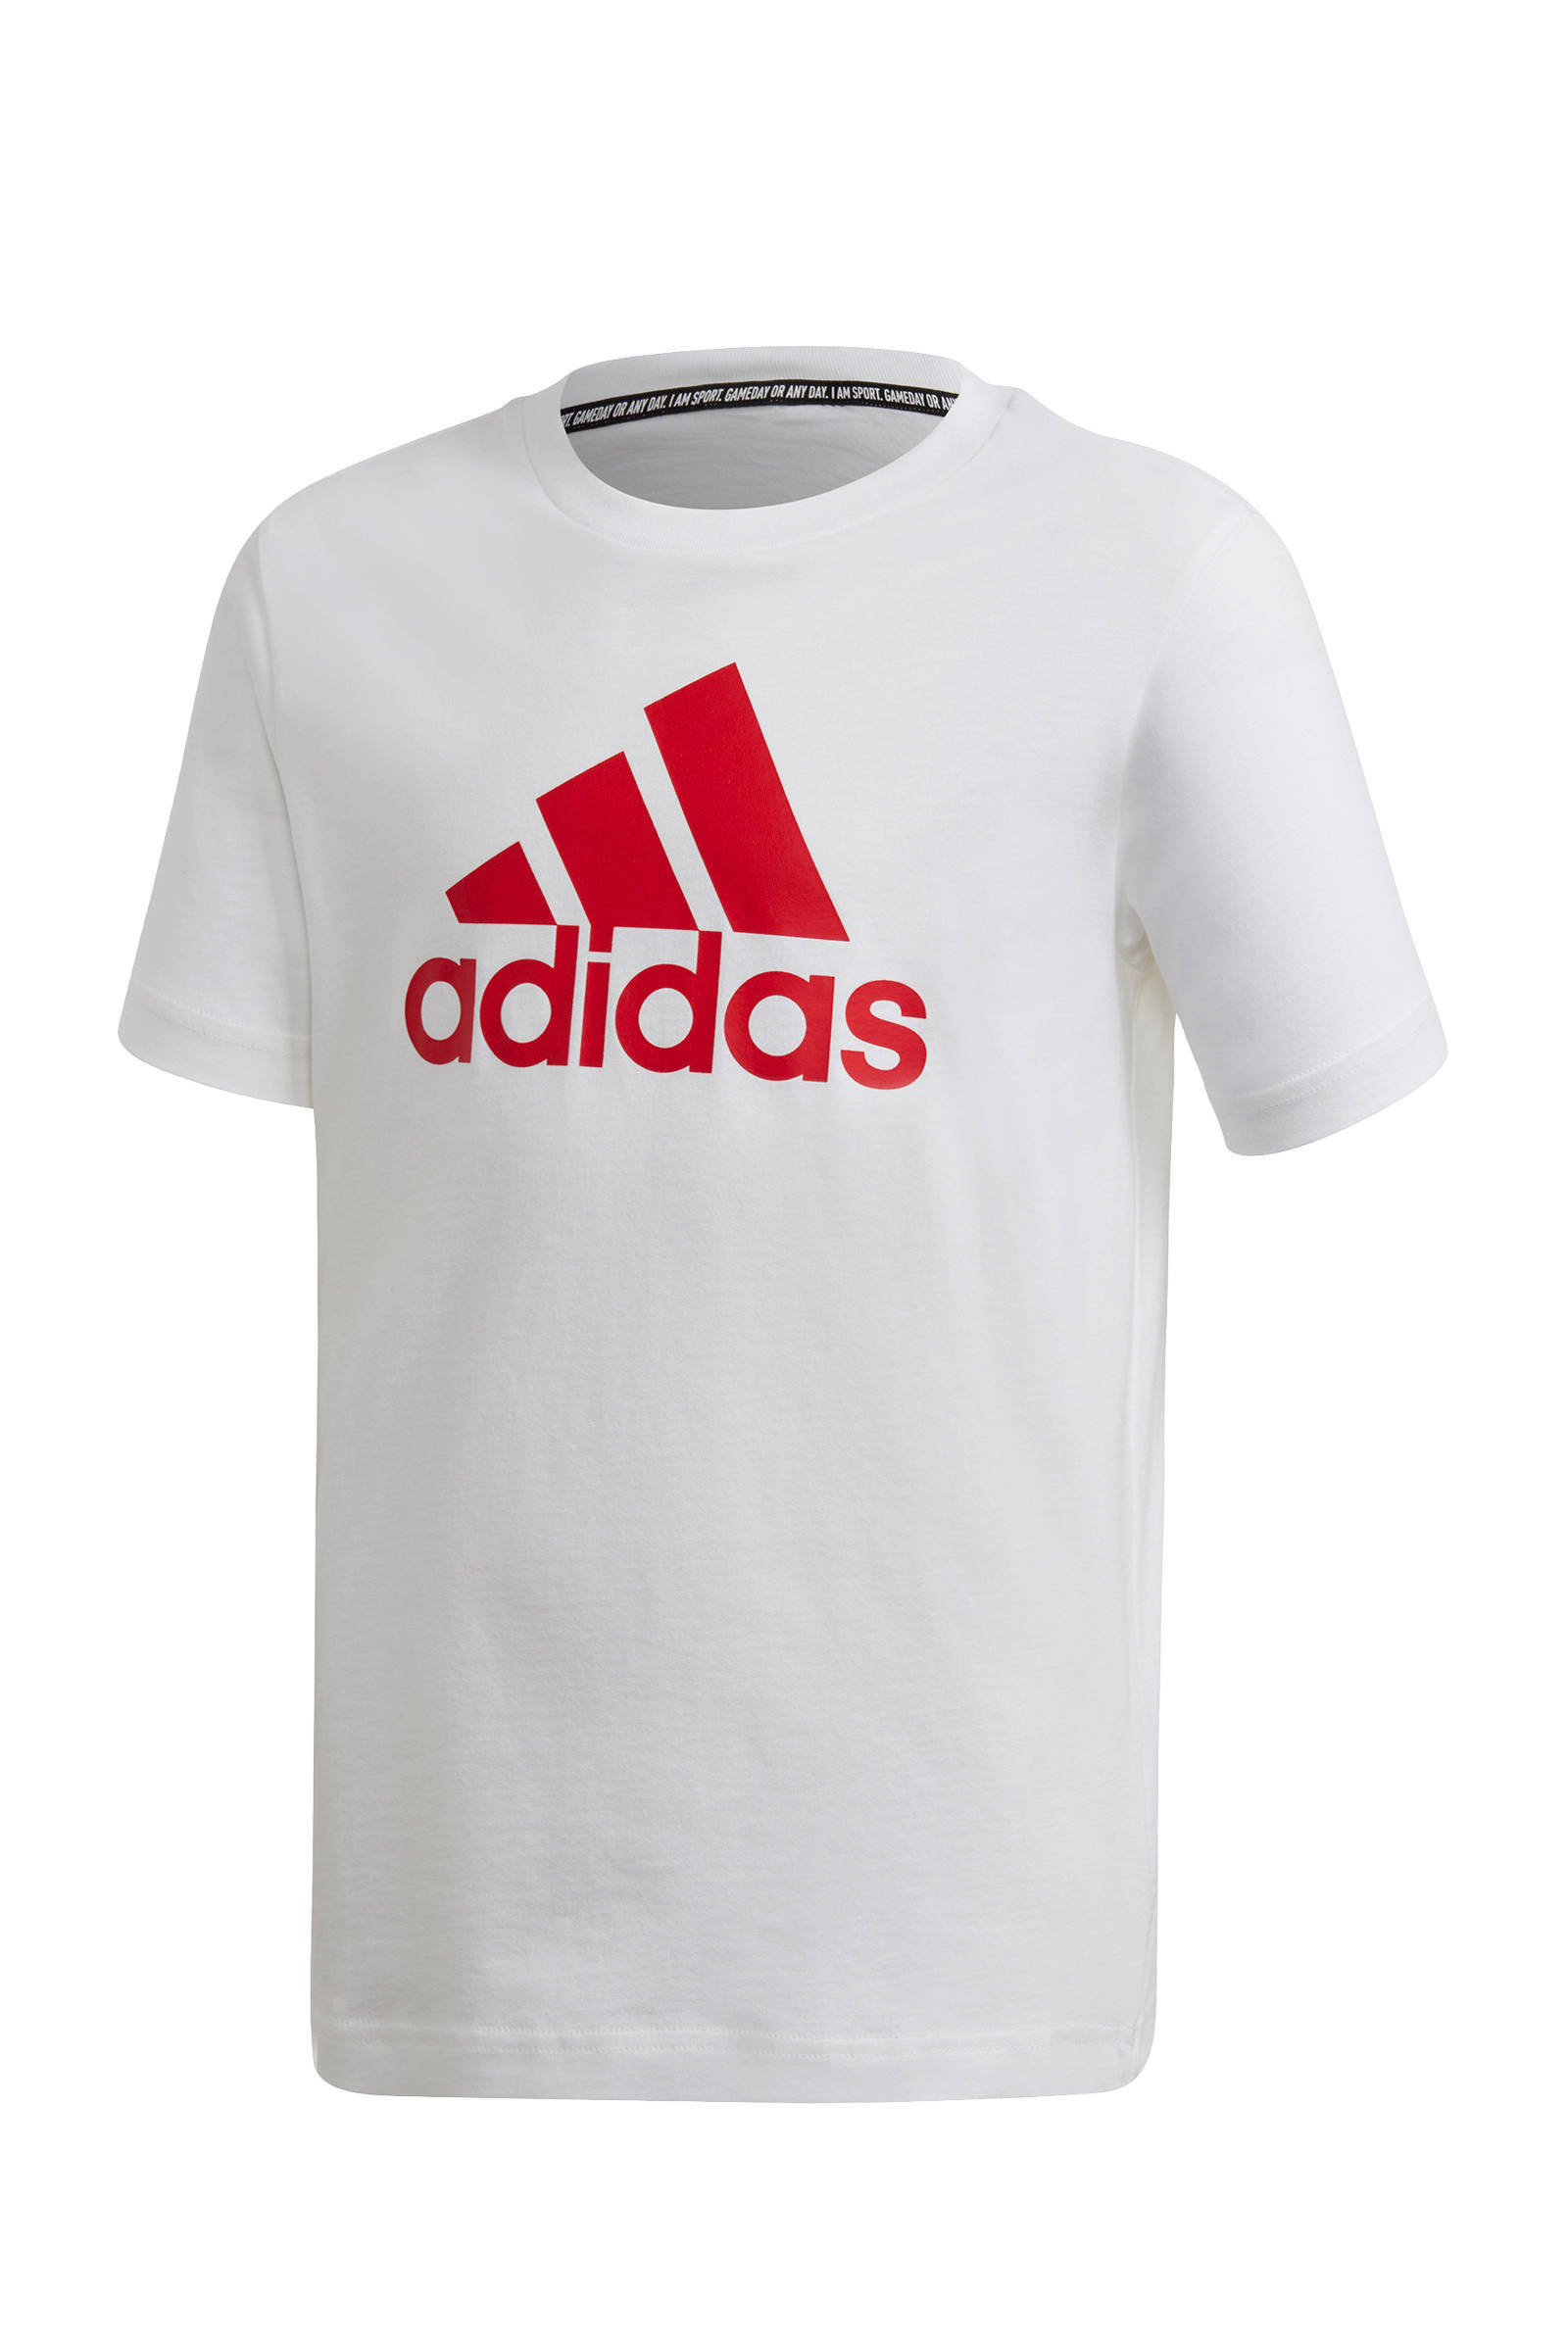 sport T-shirt wit/rood